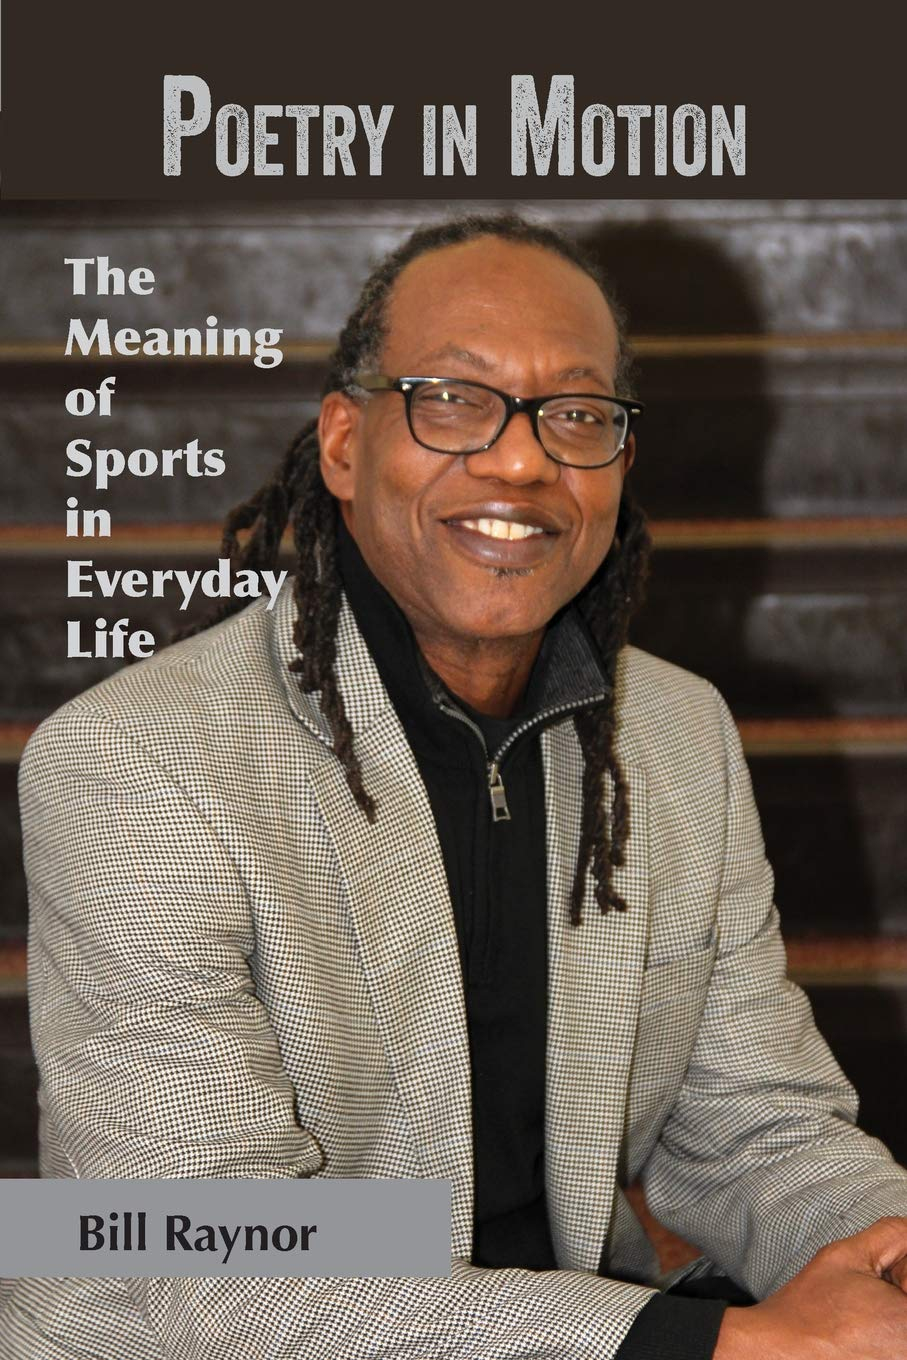 bb9b071d3 Poetry in Motion: The Meaning of Sports in Everyday Life Paperback –  Abridged, December 11, 2018